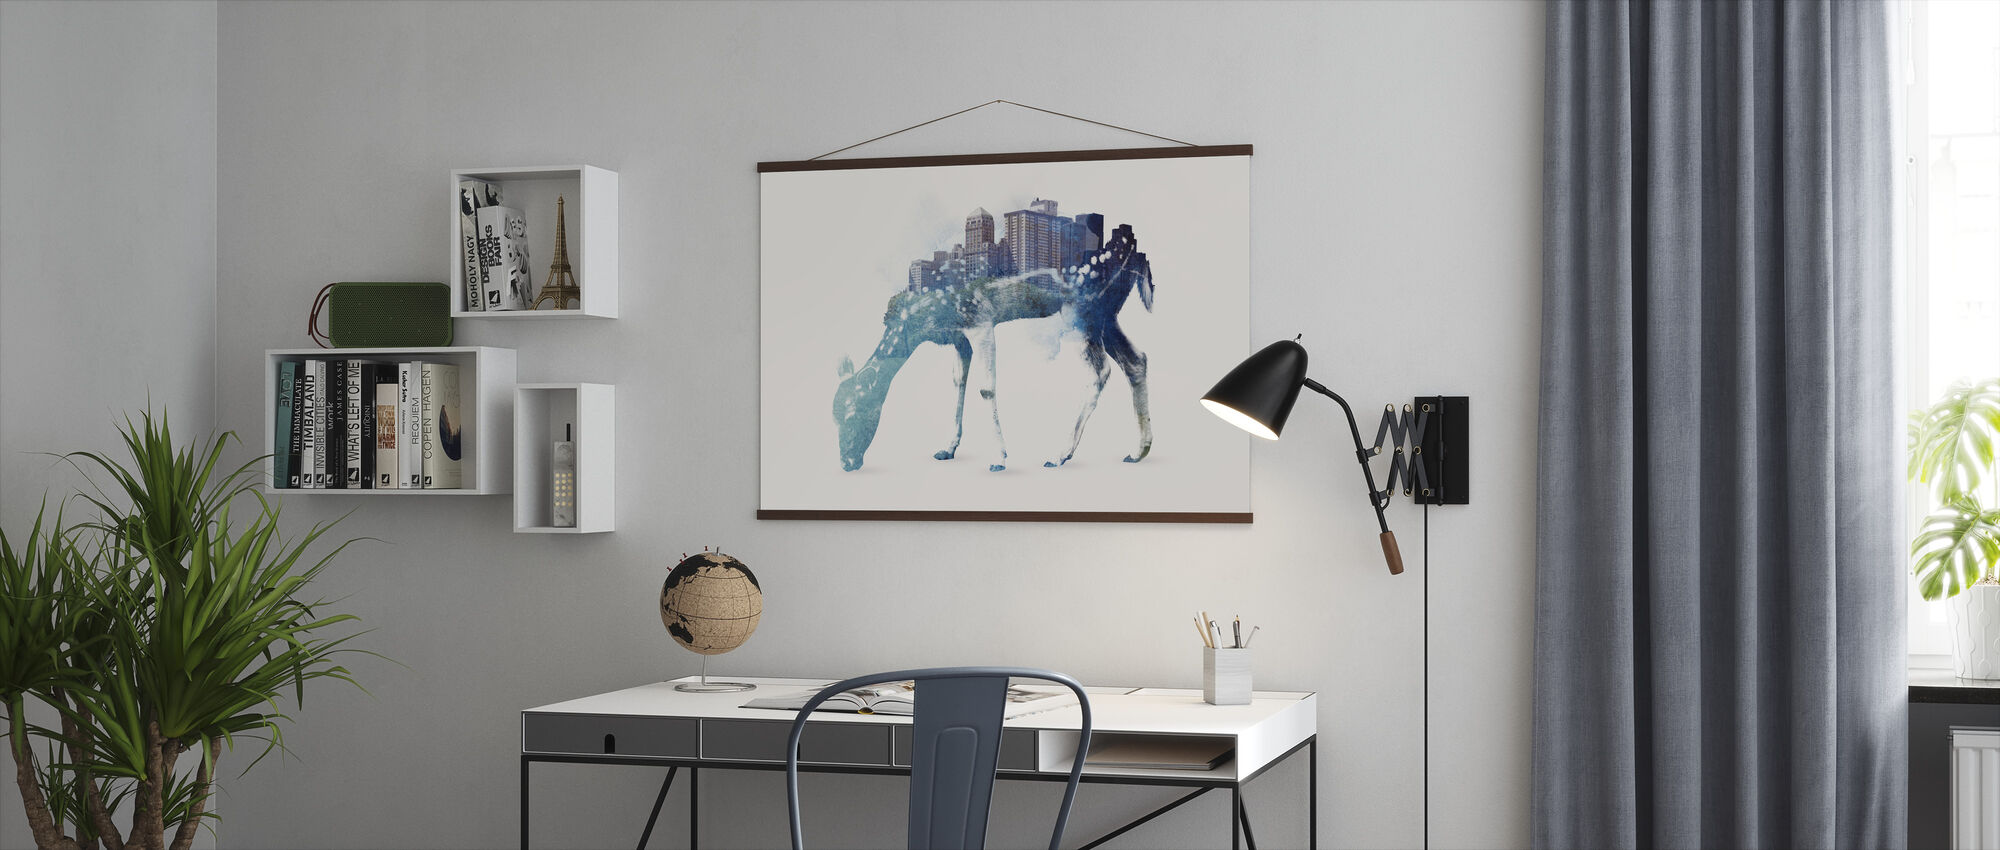 City Deer - Poster - Office